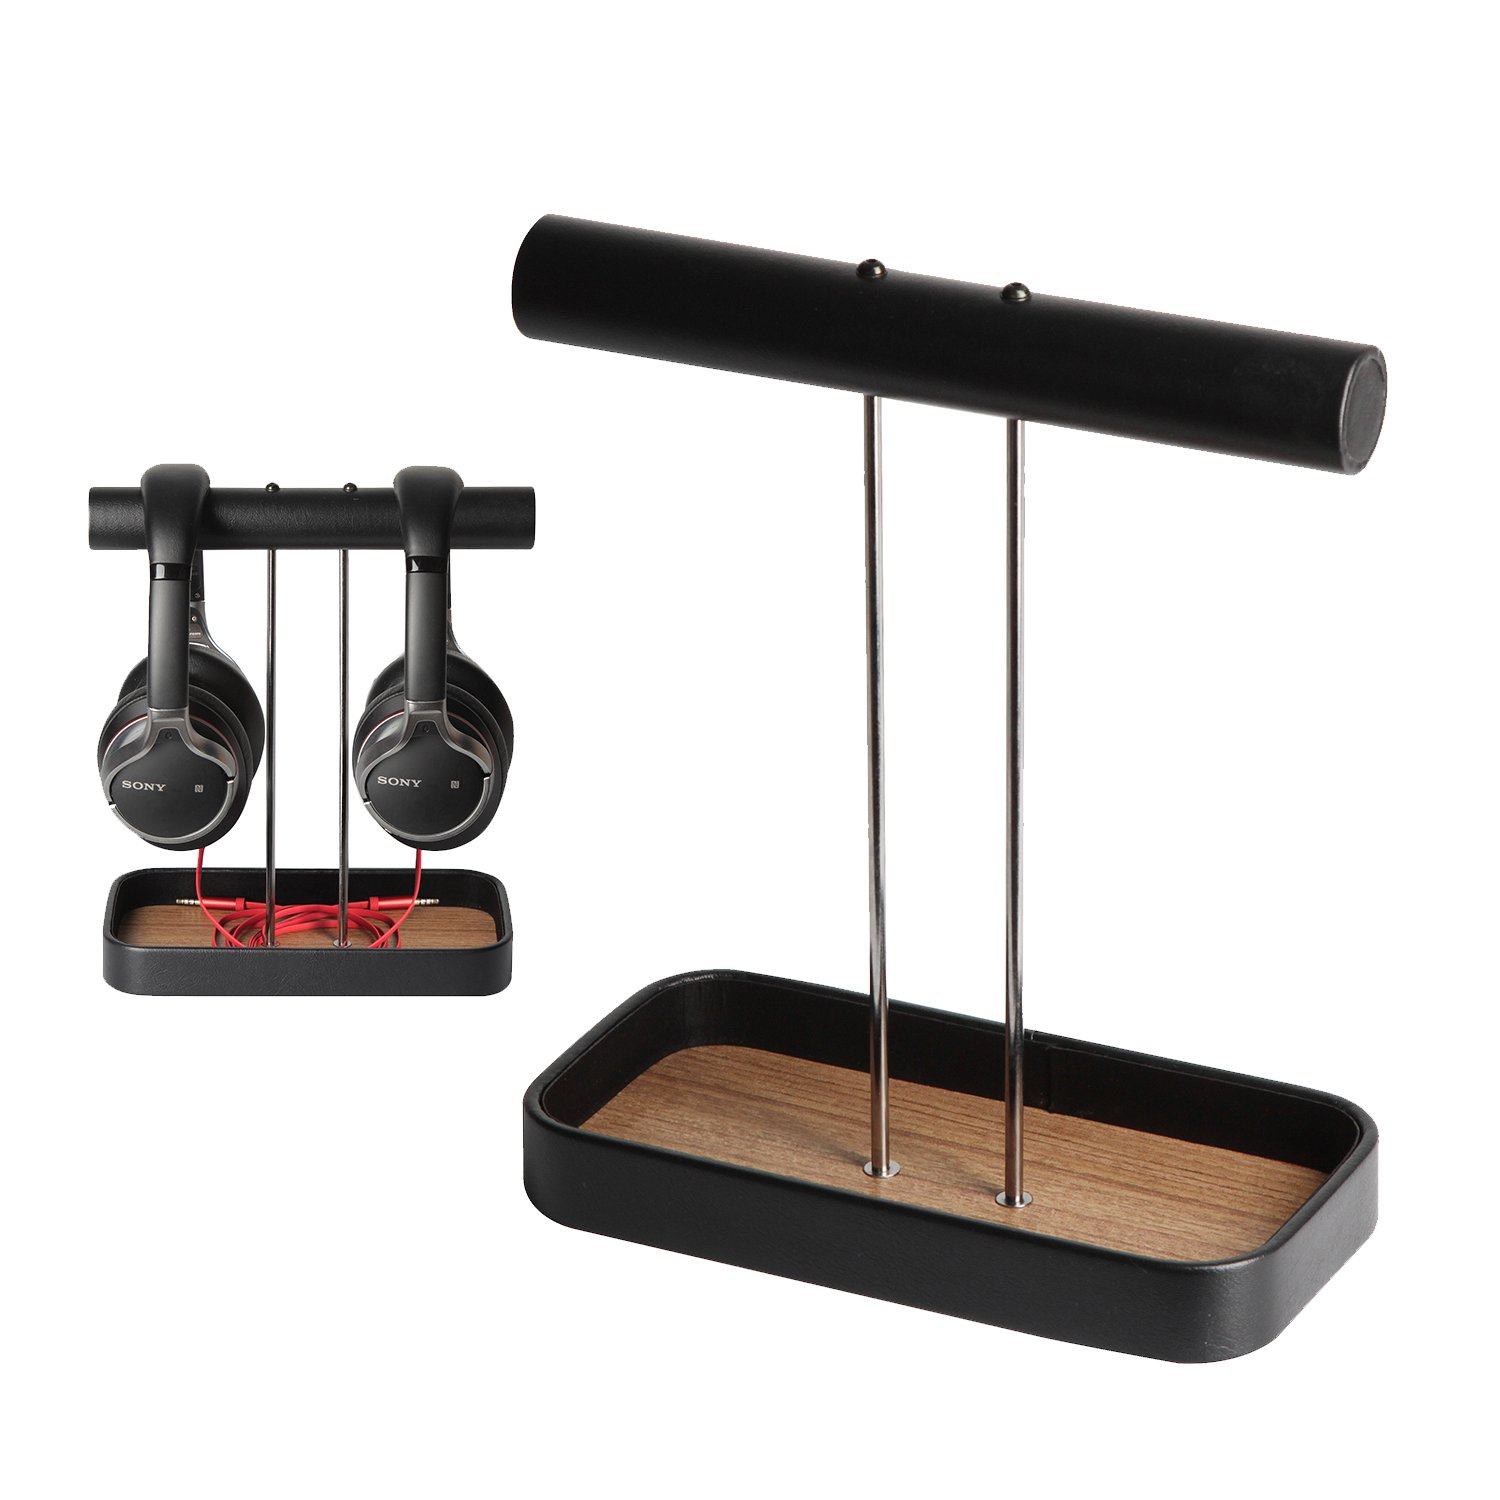 JackCubeDesign's Brand New Headphone Stand Dual Headset Holder Display Earphone Hanger Rack Support for 2 Headphones with Bamboo Tray and Cable Holder(8.3 x 4.3 x 10.4 inches) – :MK118S